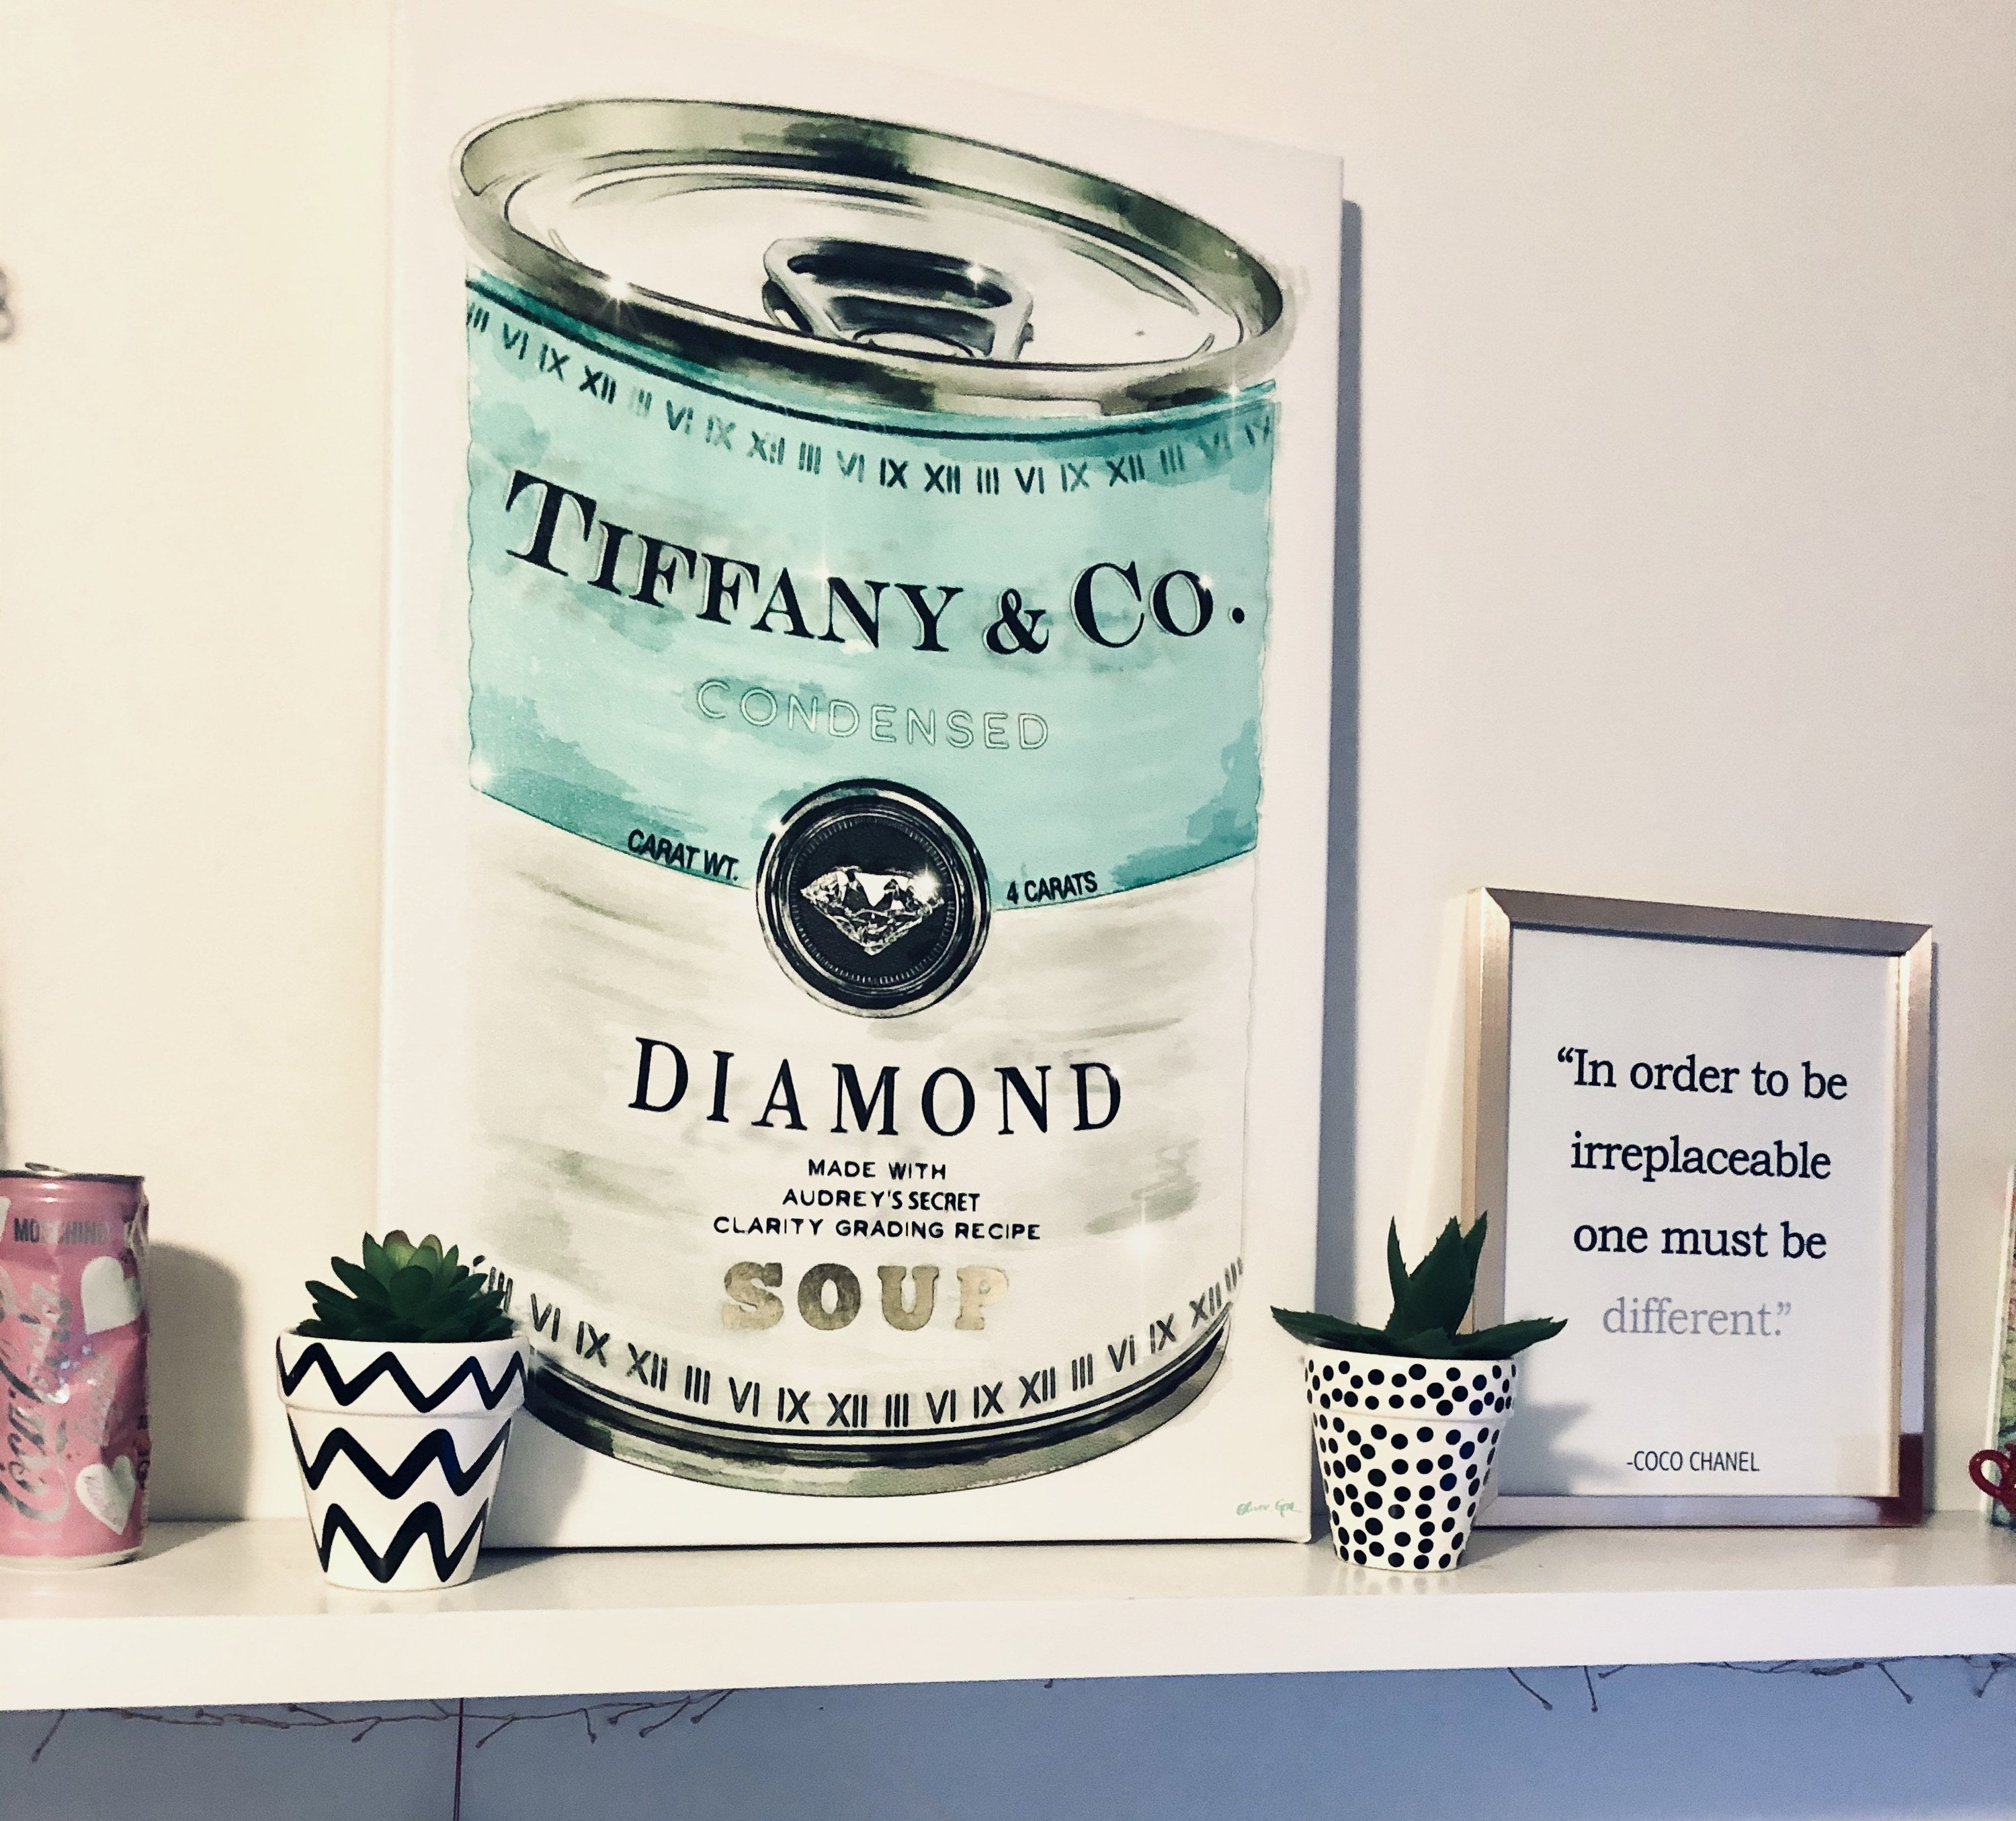 the canvas art of a tiffany and co. soup can in a buzzfeed editor's room